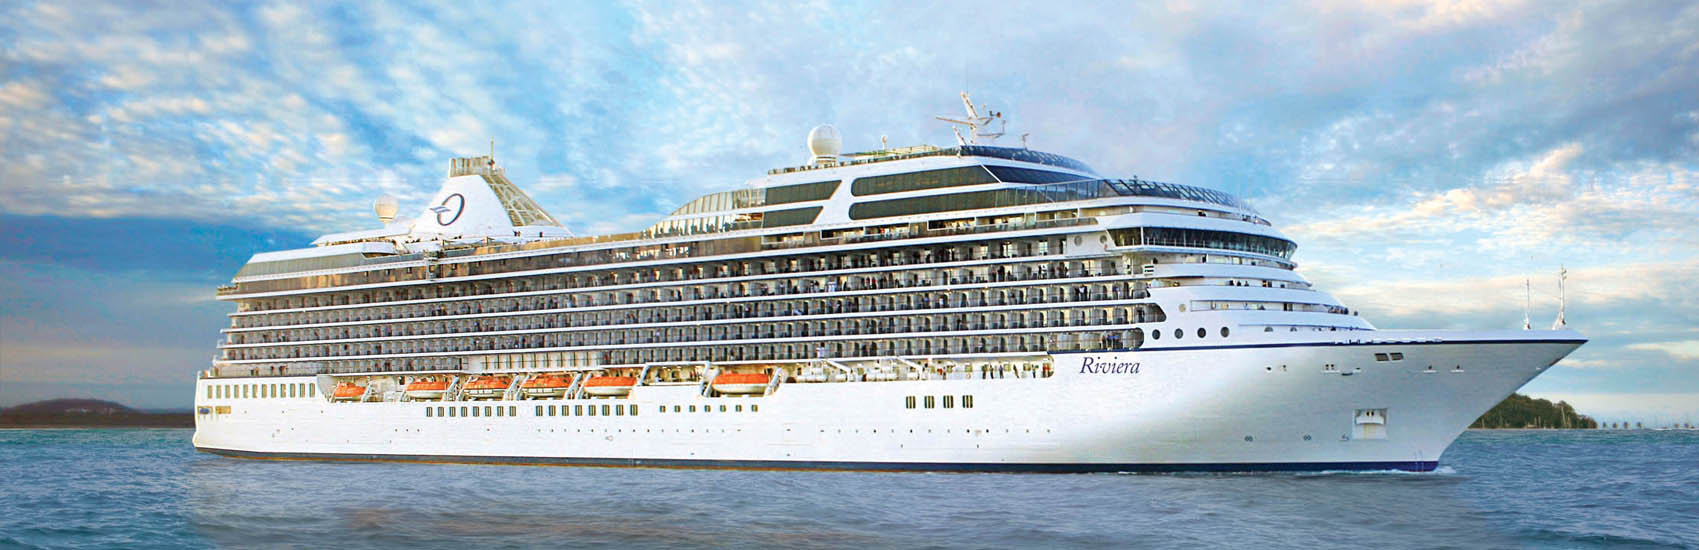 Enjoy roundtrip Airfare* and your choice of additional bonus amenities with Oceania Cruises!